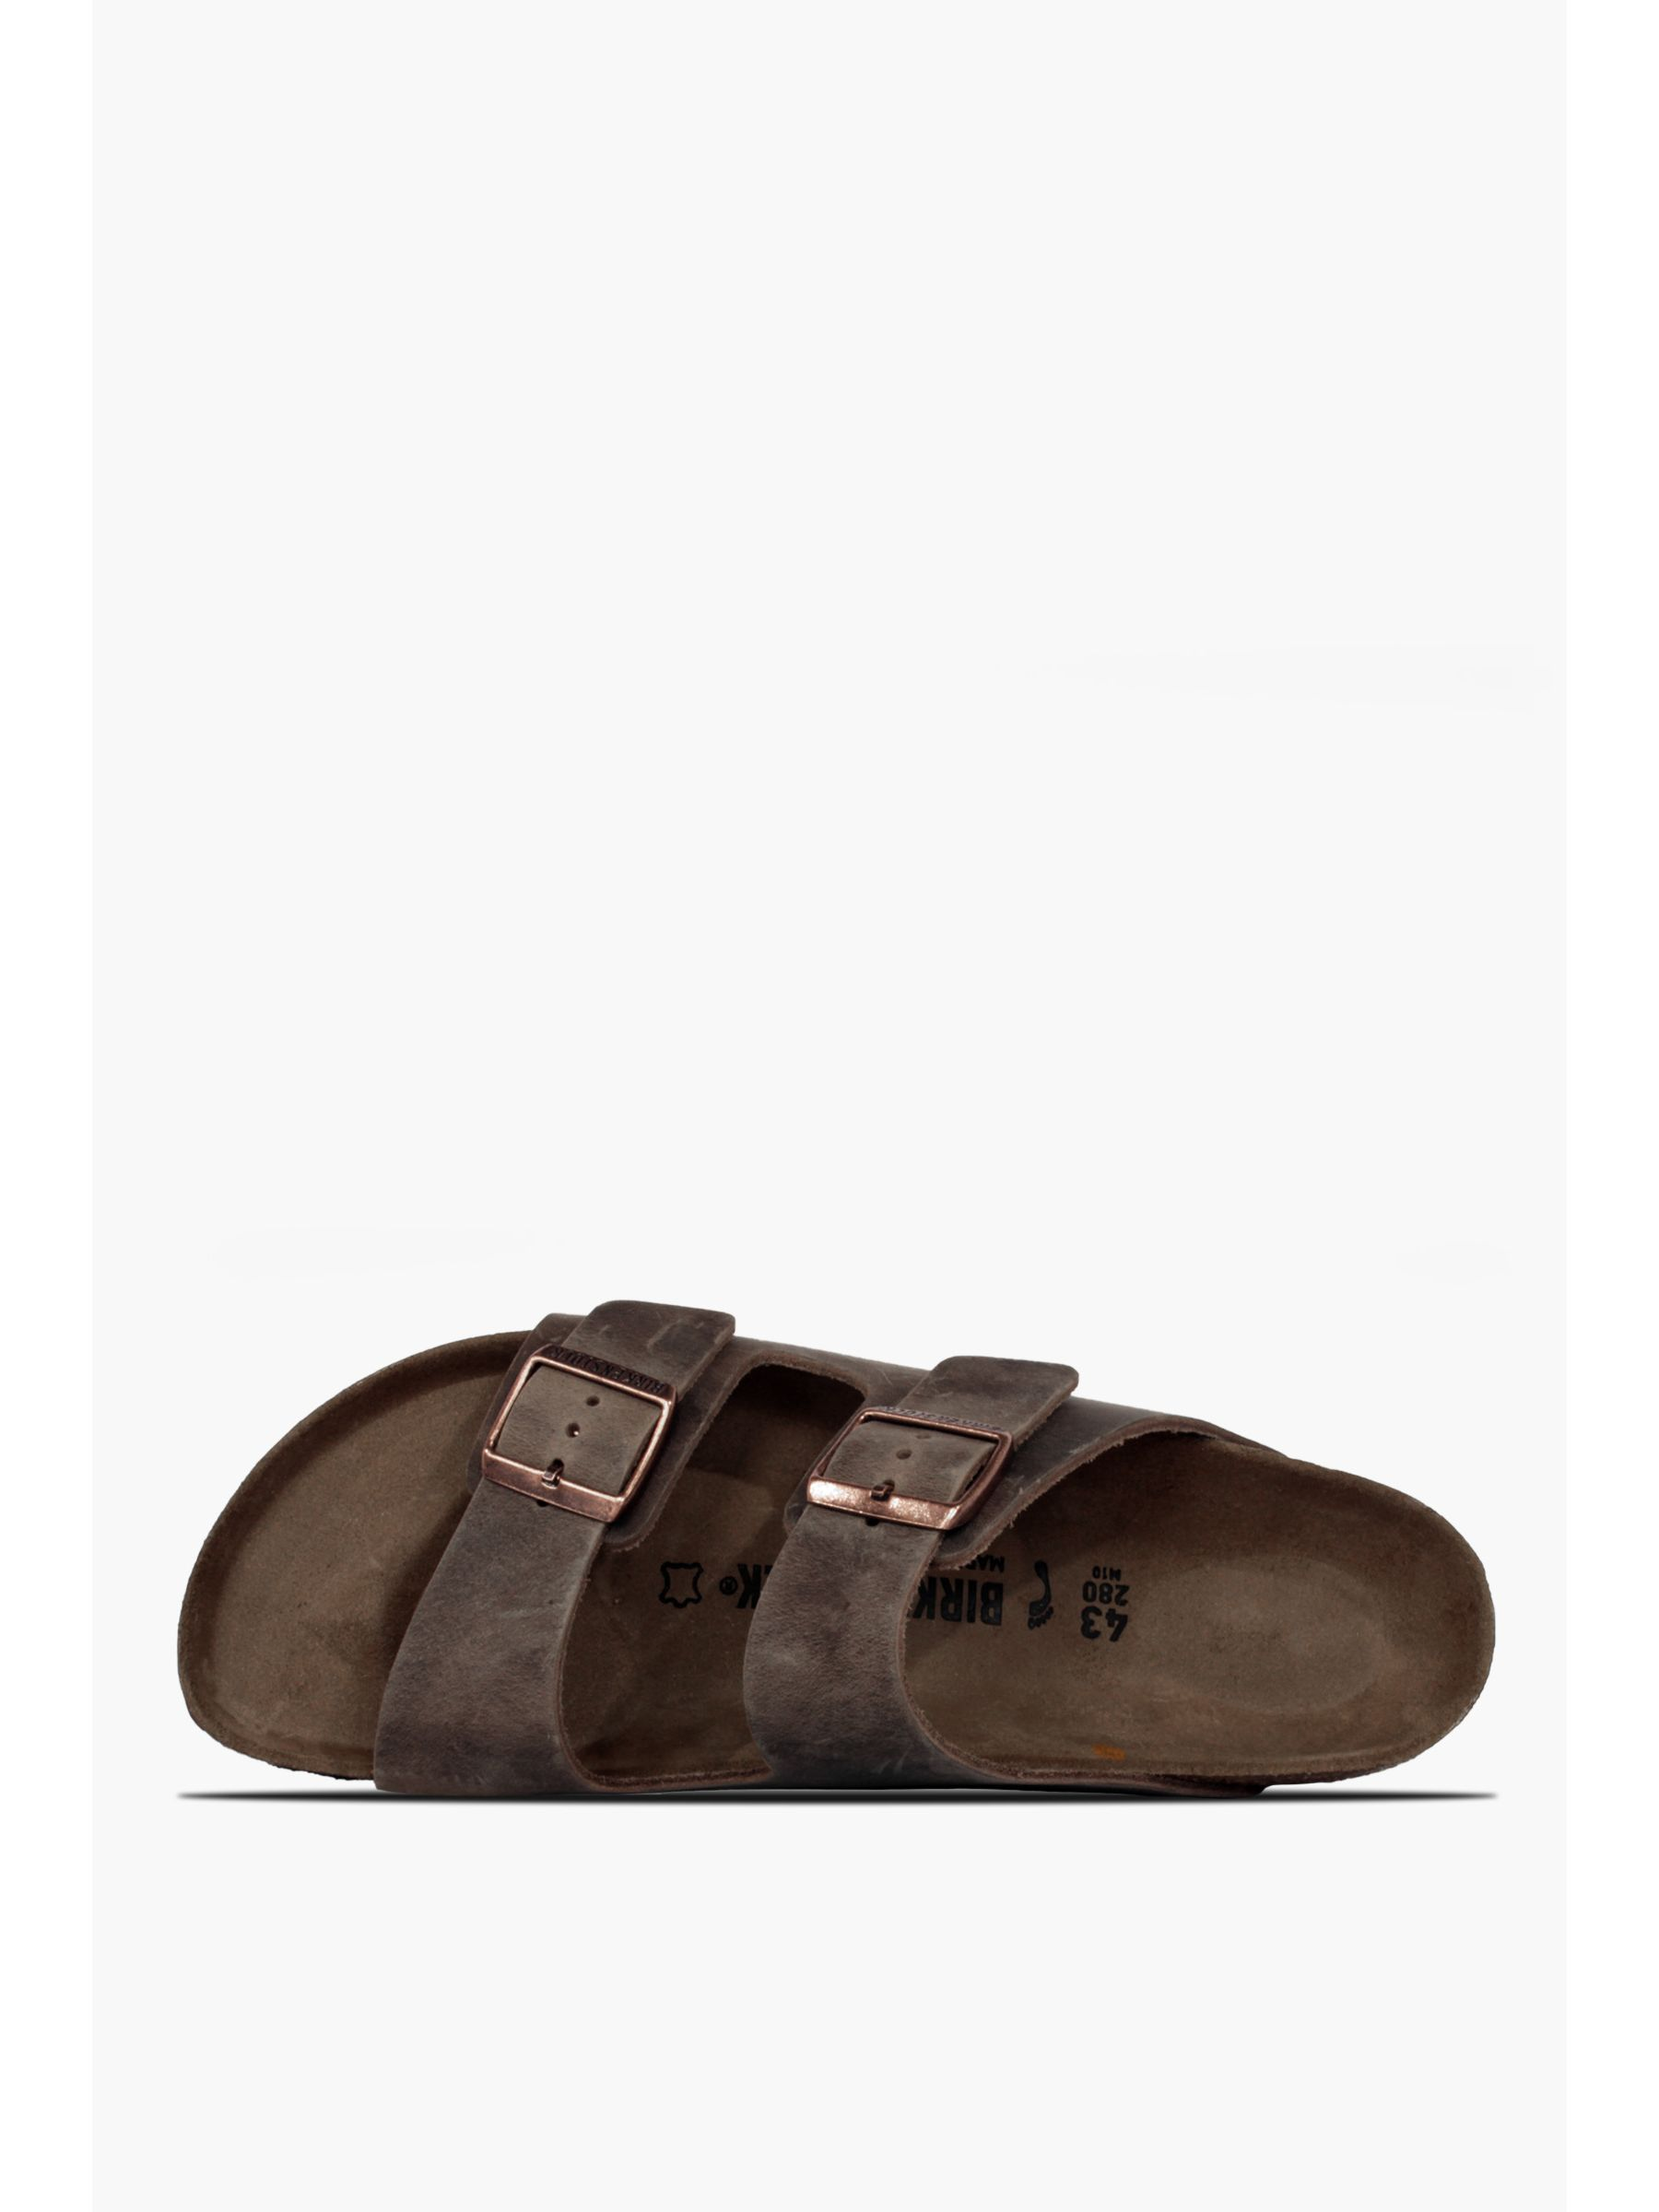 111022335_birkenstock_arizona_tabacco_brown_d.jpg